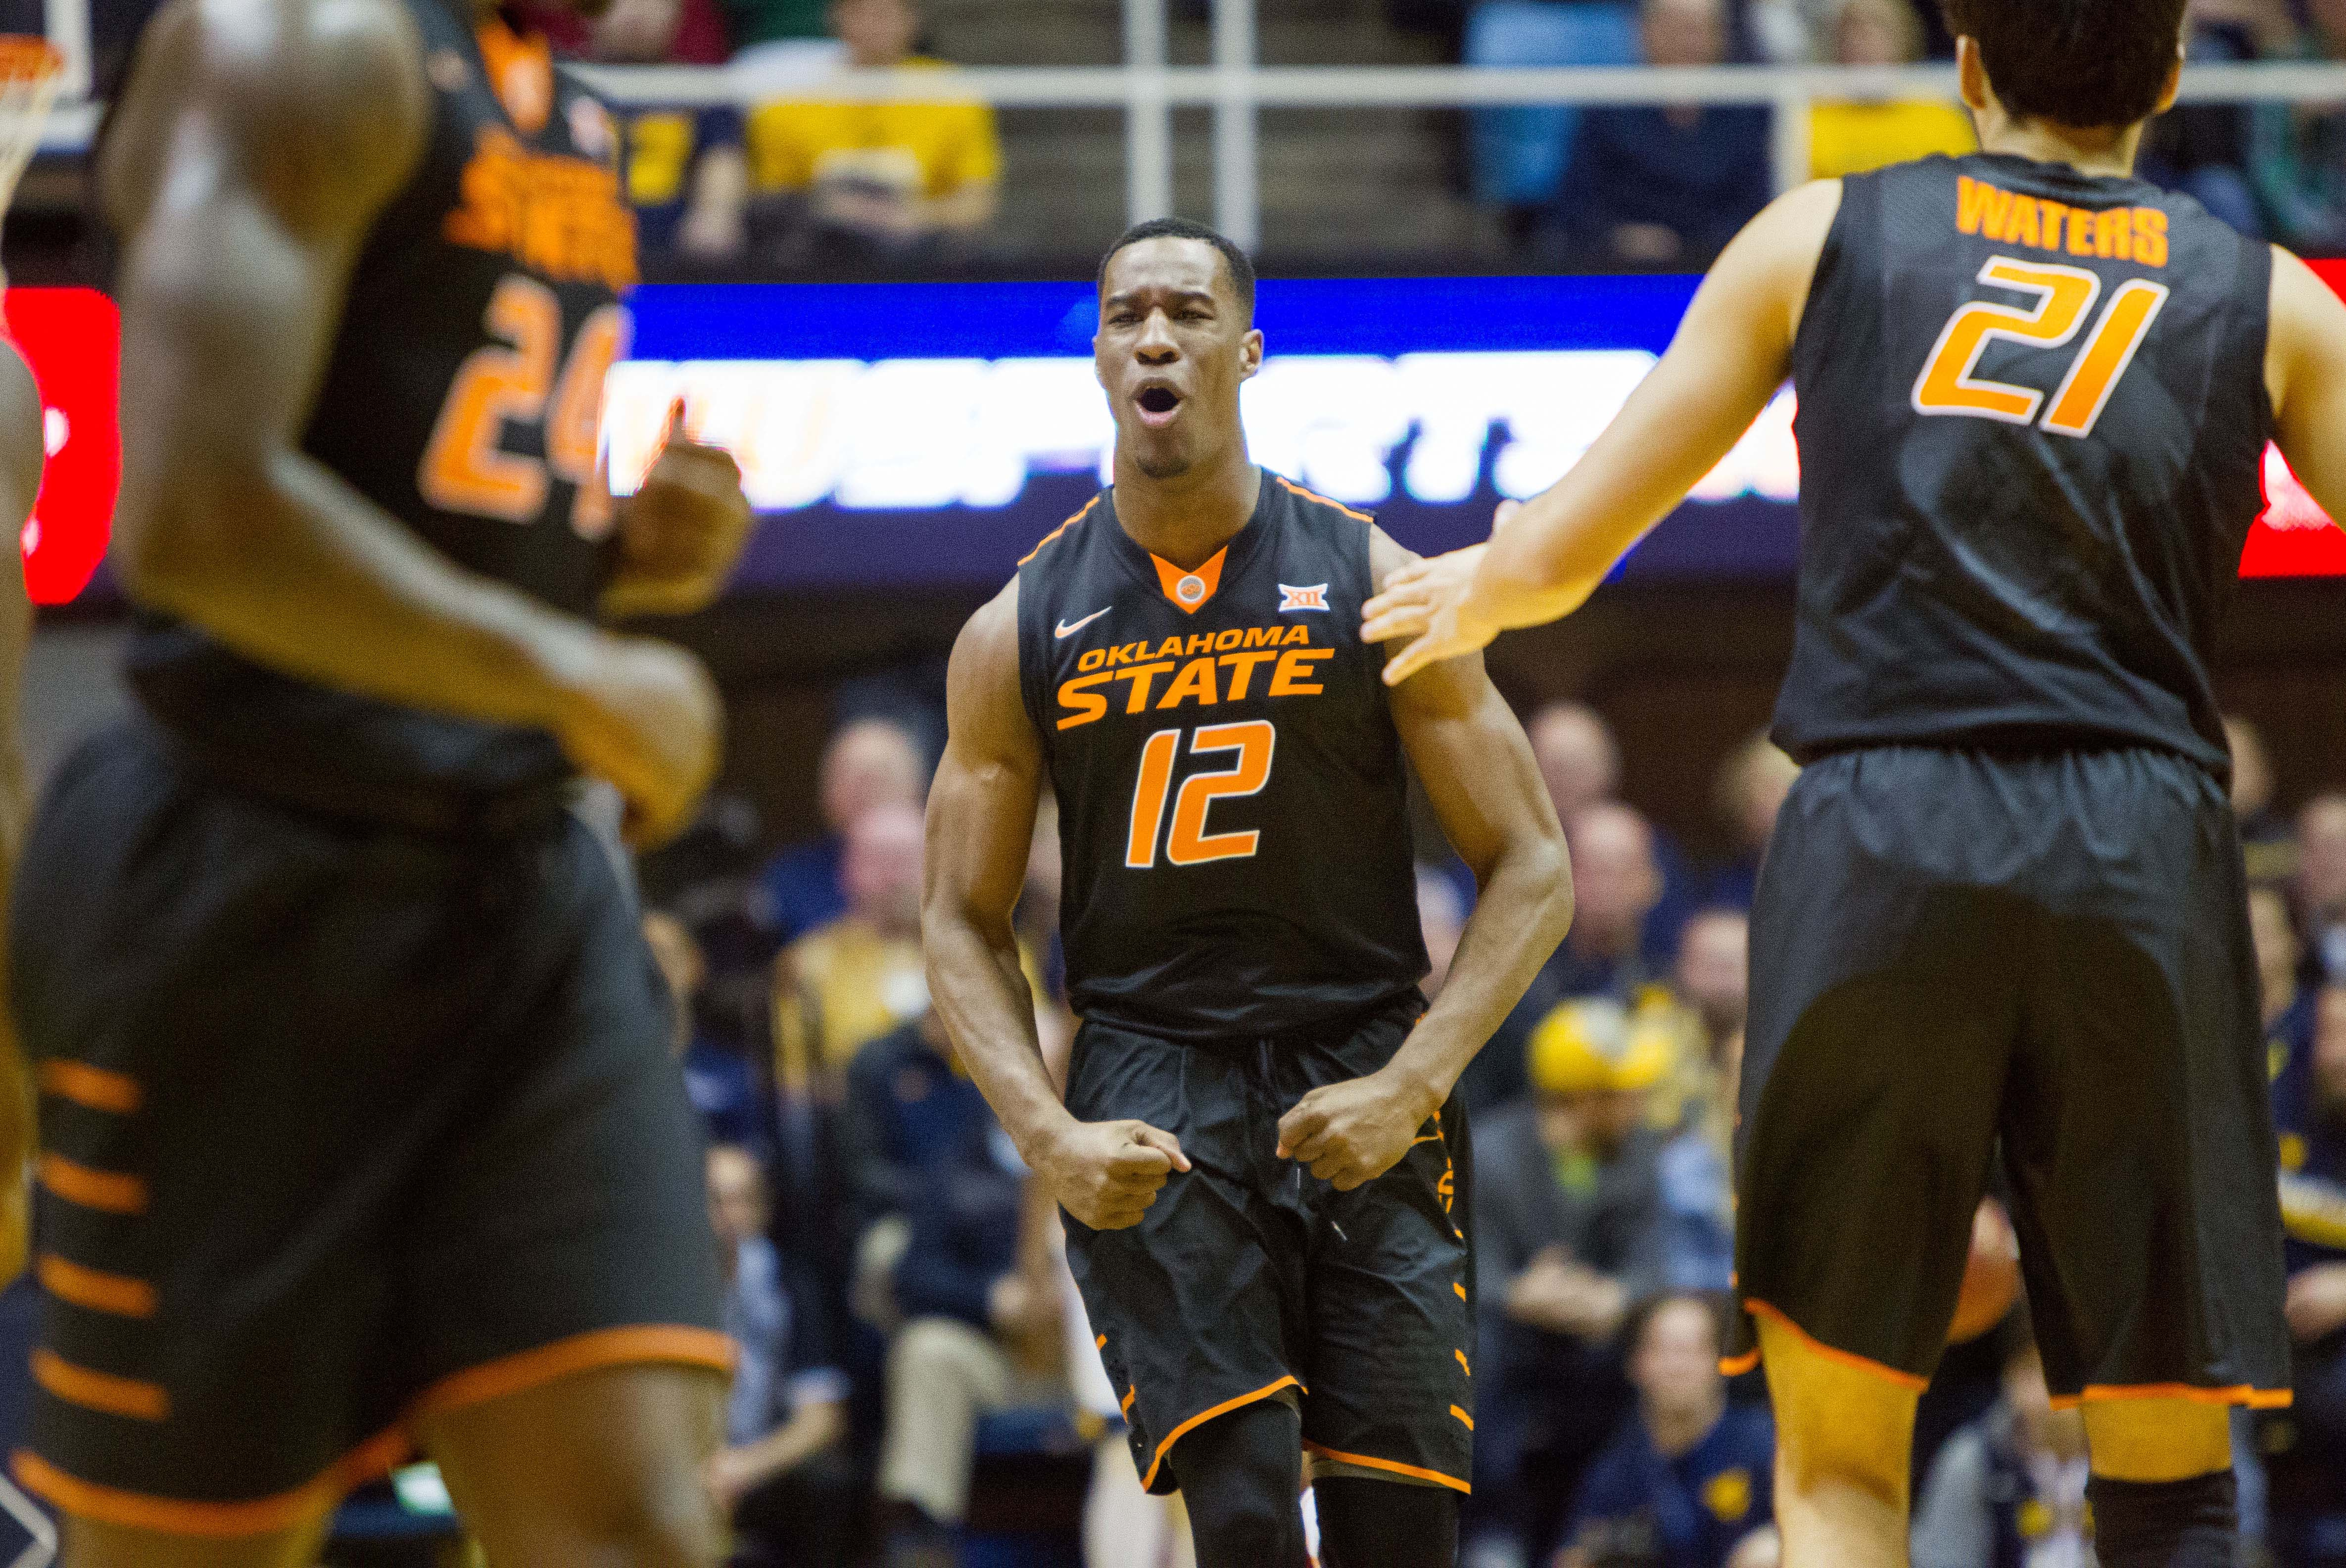 CBB Picks: Can Baylor win as a road underdog against Oklahoma State?